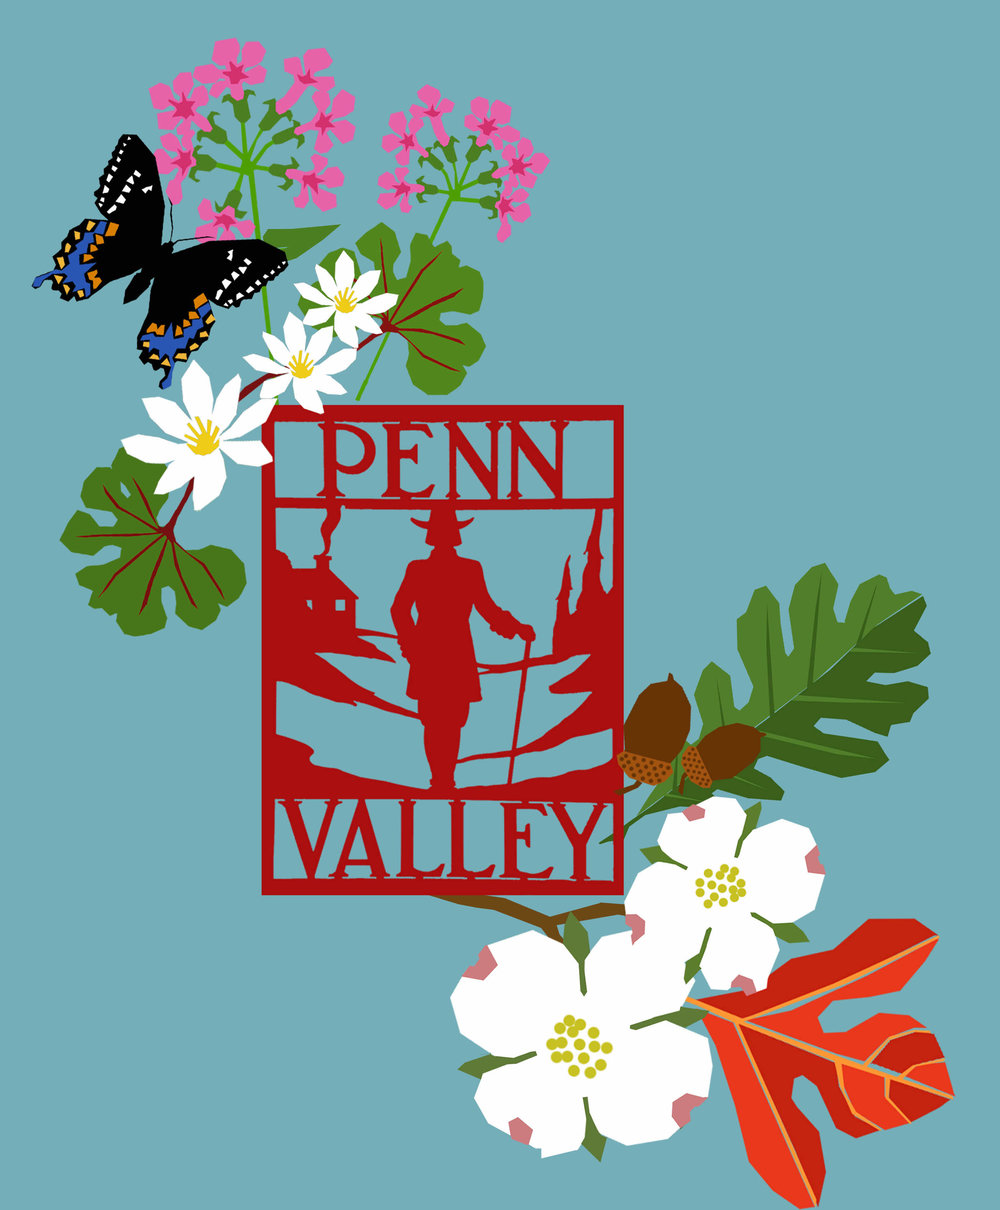 Mini-graphic designed by local mural artist, Eurhi Jones. This will appear on specially designed t-shirts for purchase to help support the mural project. In addition to our historic neighborhood sign, a spicebush swallowtail butterfly accompanies locally native plants and trees including, phlox, blood root, oak, dogwood and sassafras.